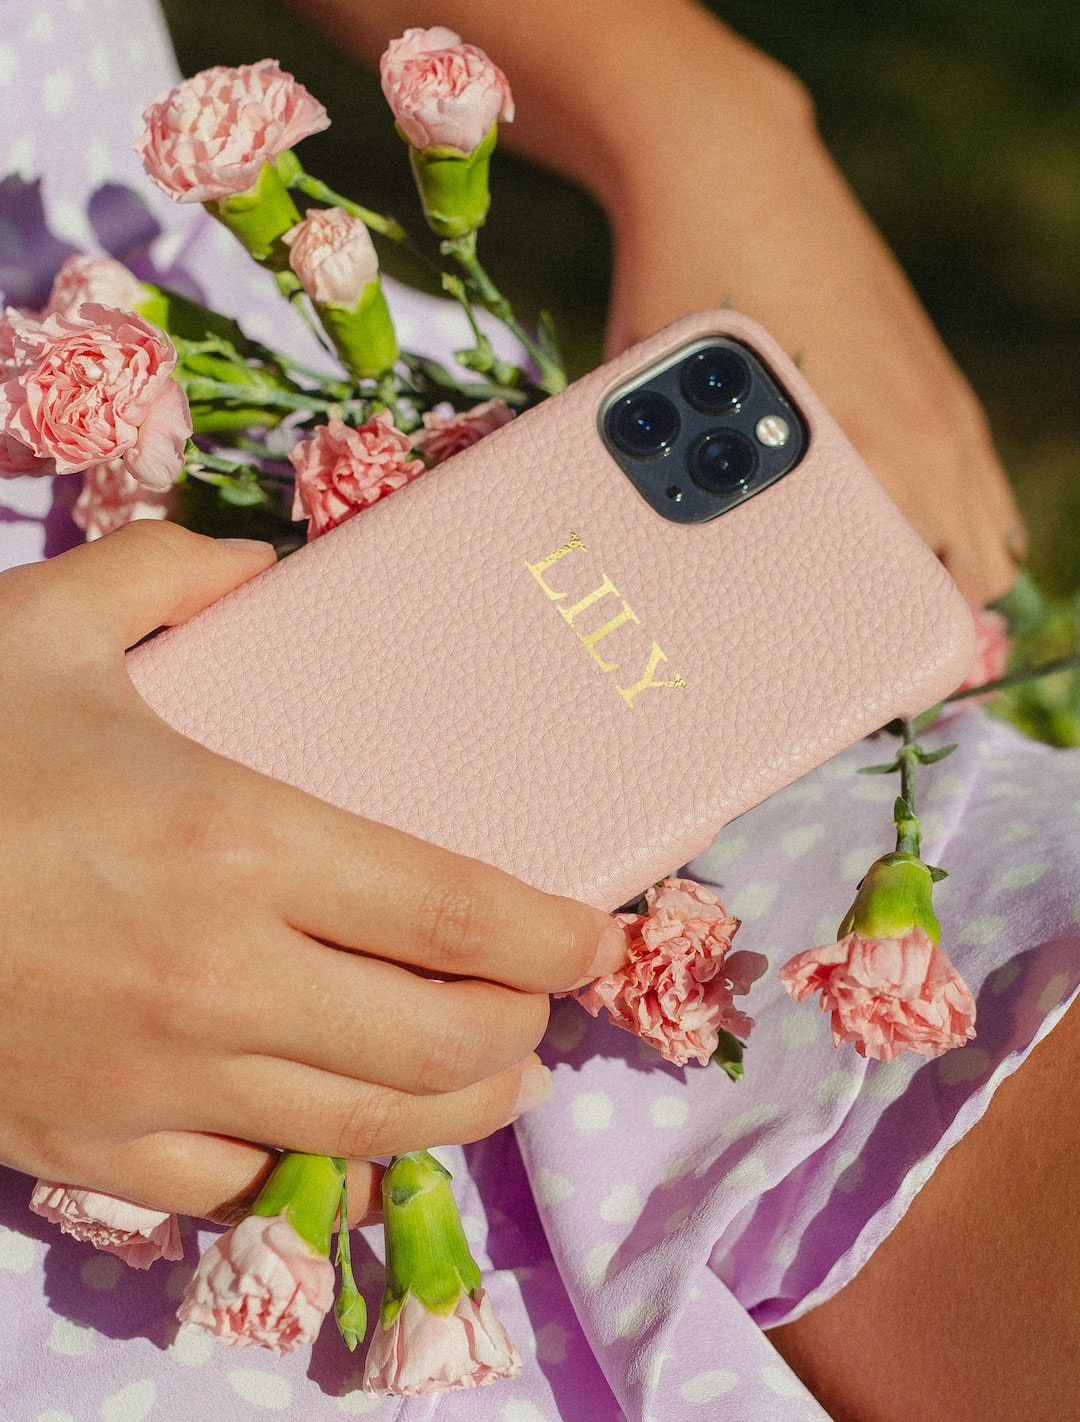 A woman holds a pink phone case and pink flowers.